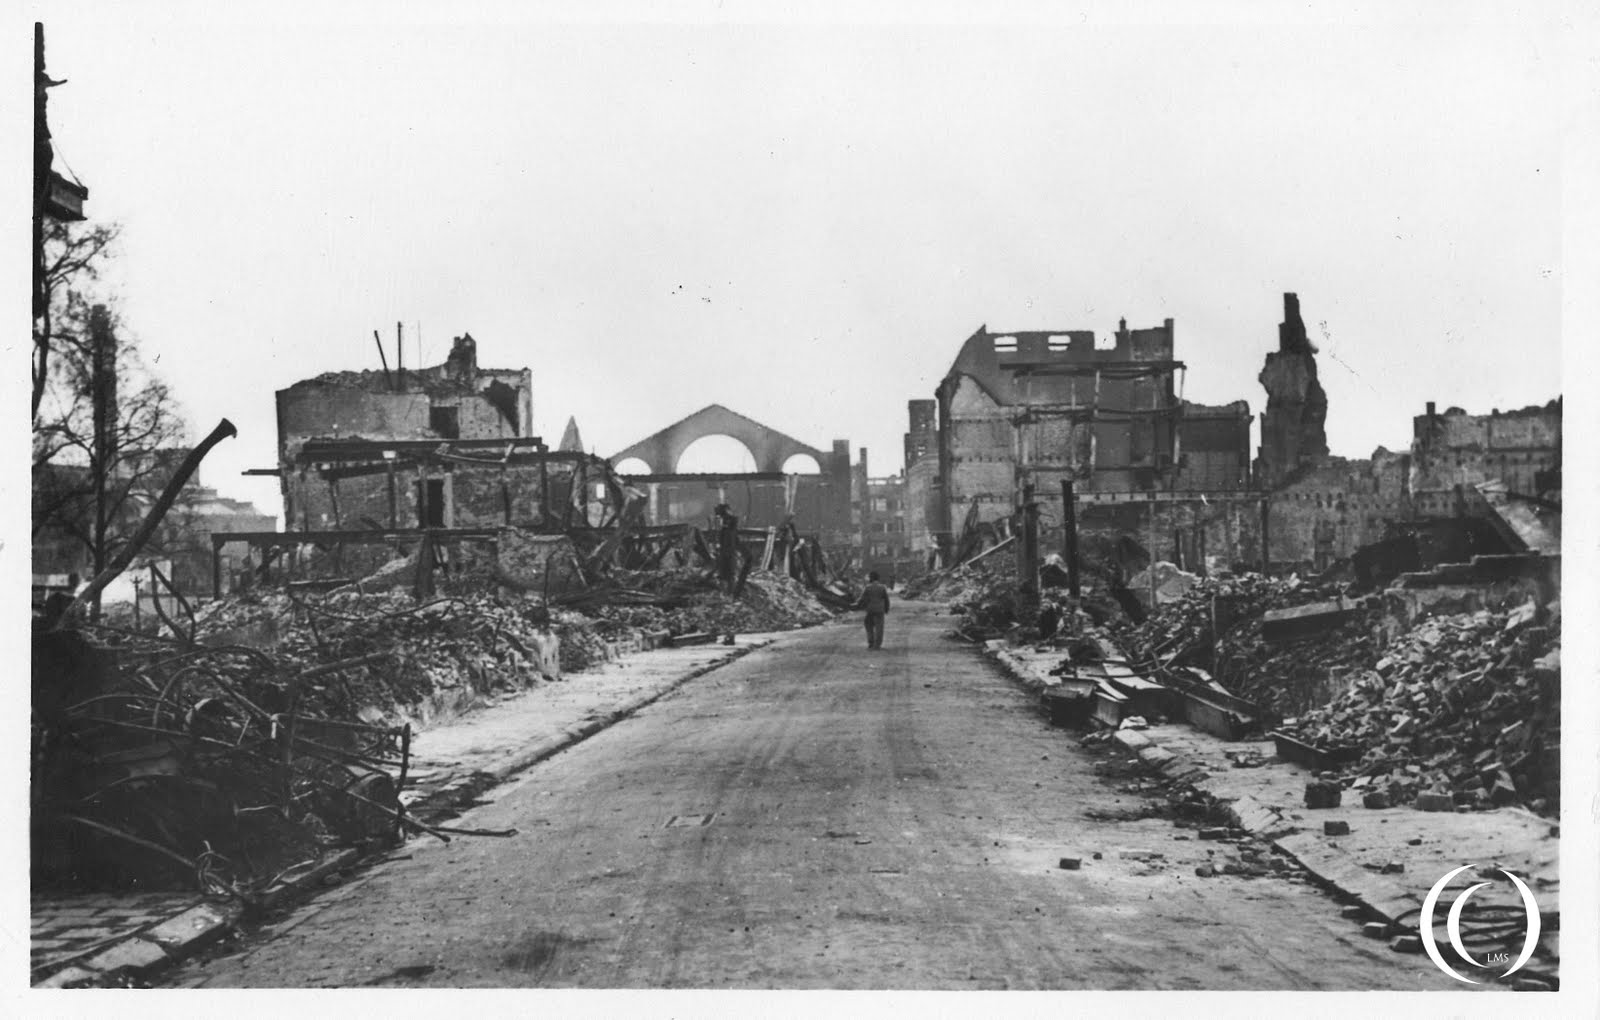 A view on the Hoogstraat in Rotterdam after the bombing